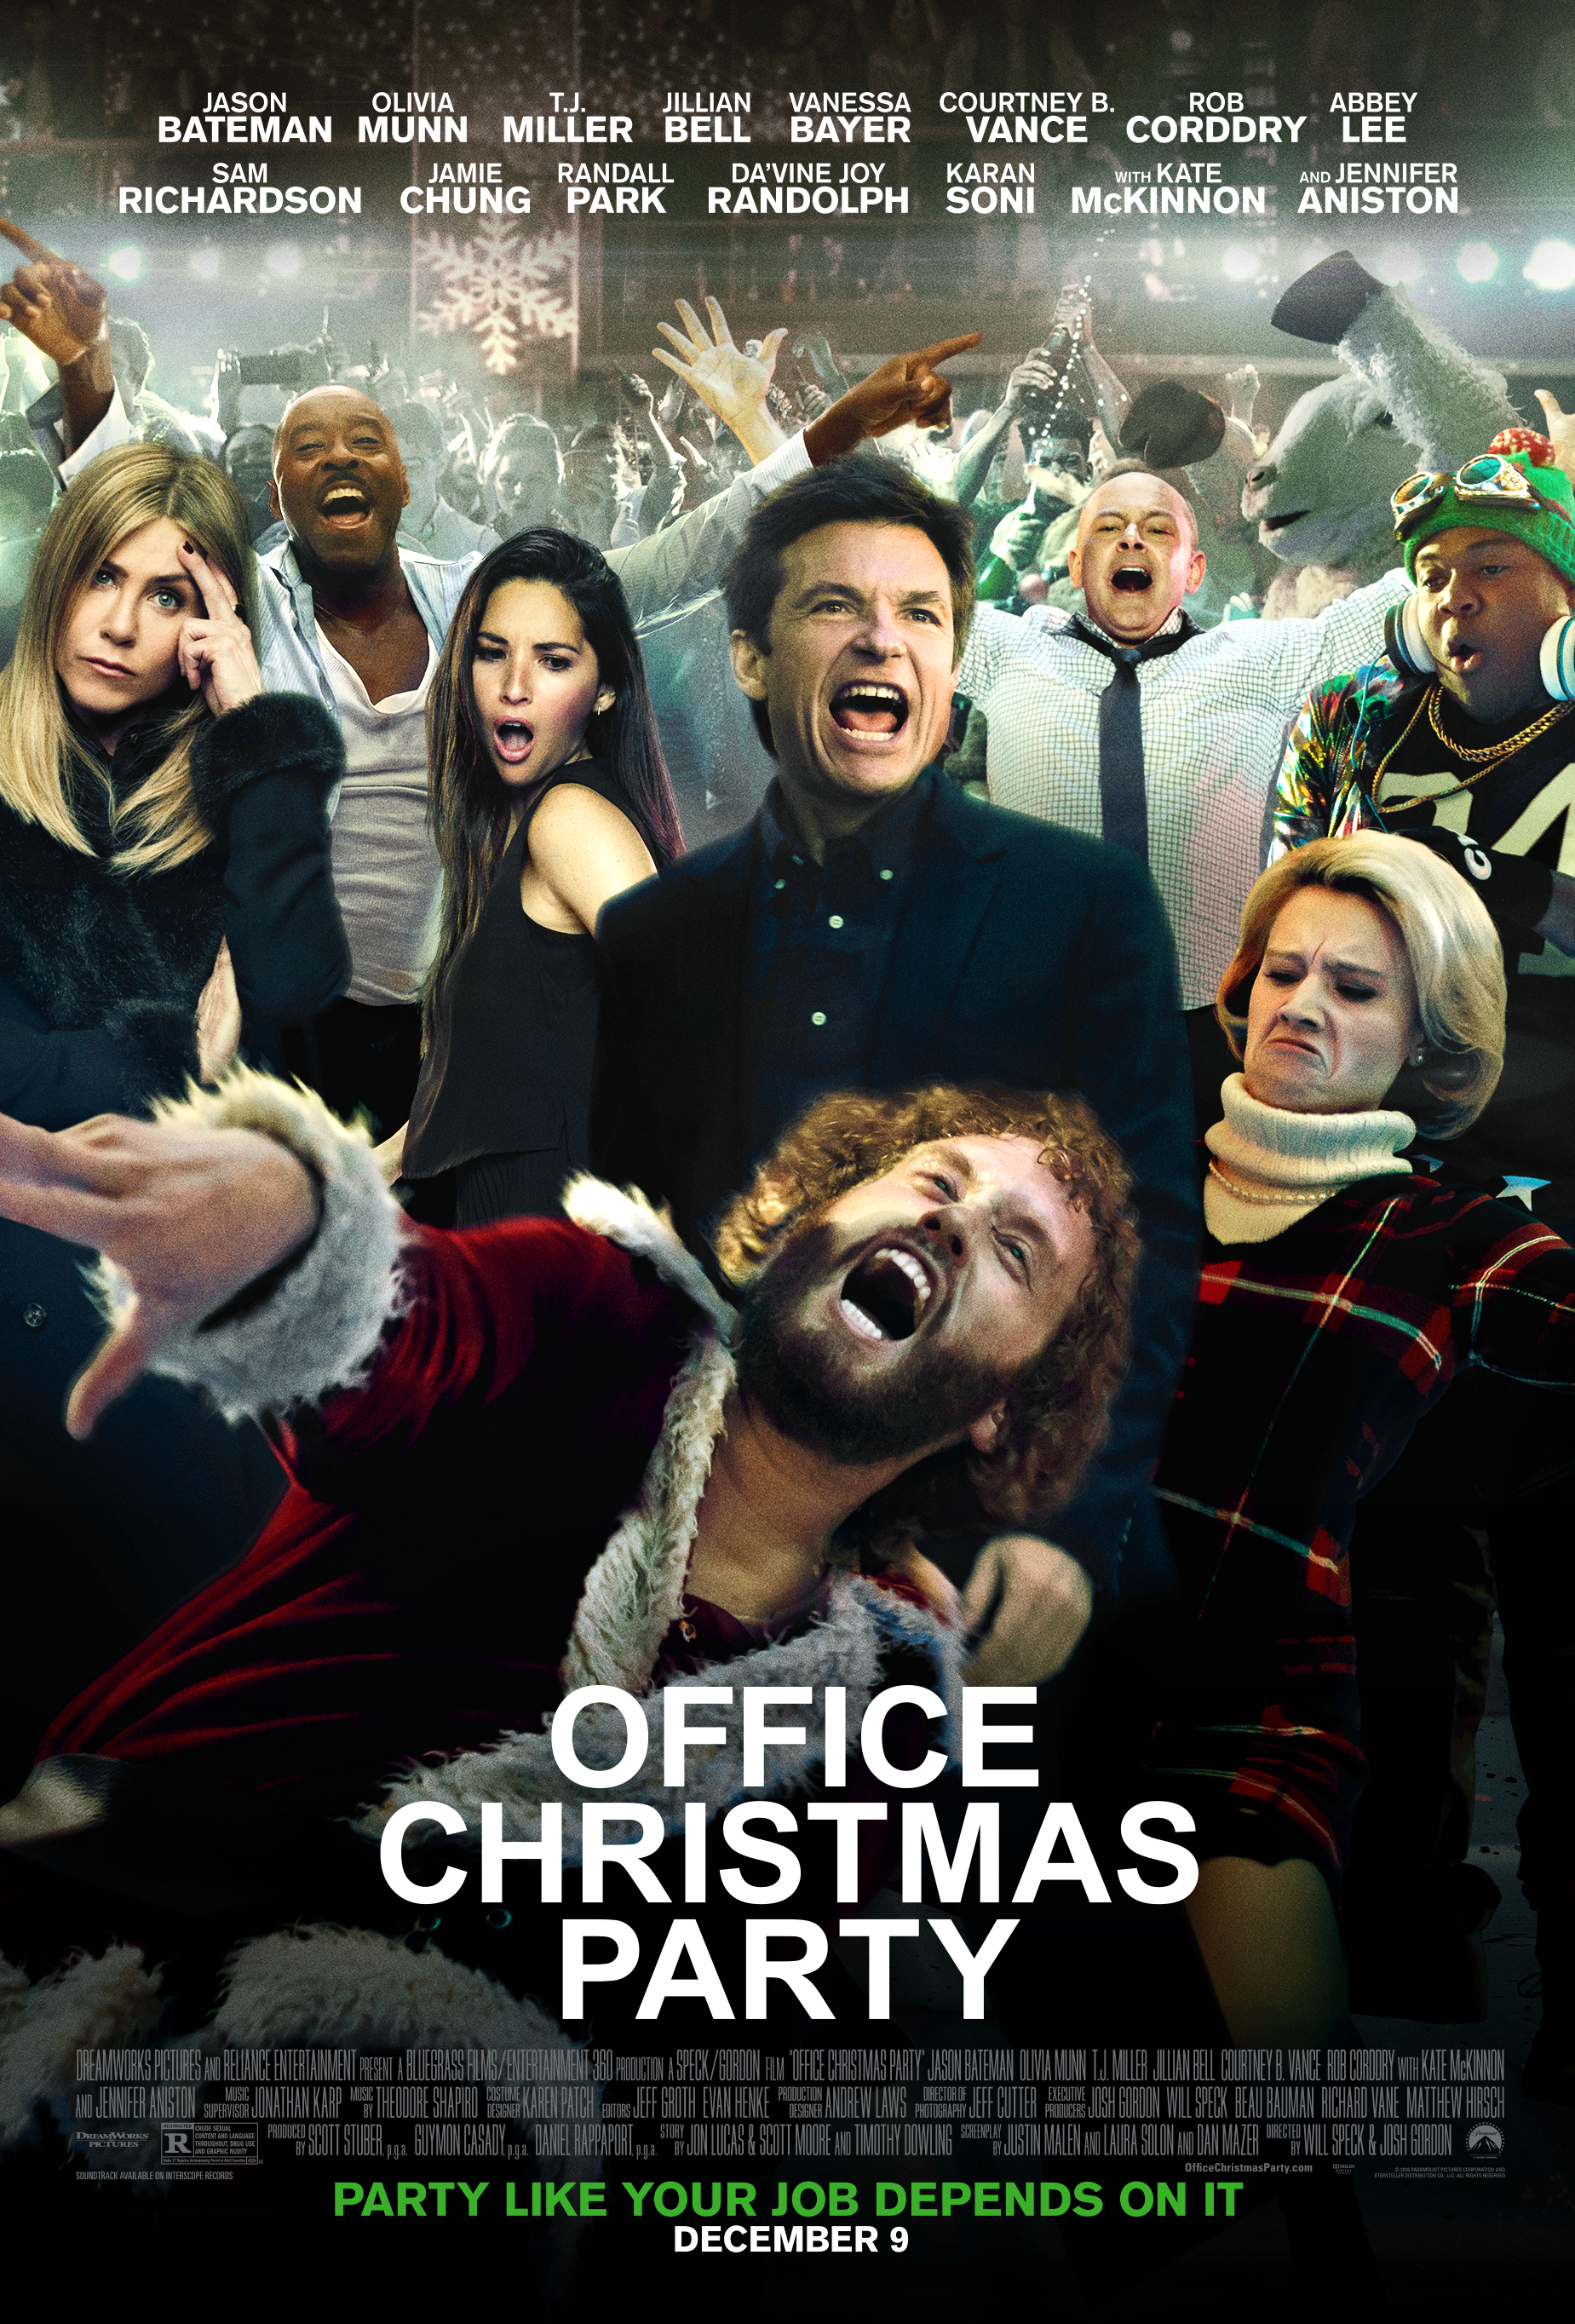 Office Christmas Party Movie.Office Christmas Party At An Amc Theatre Near You